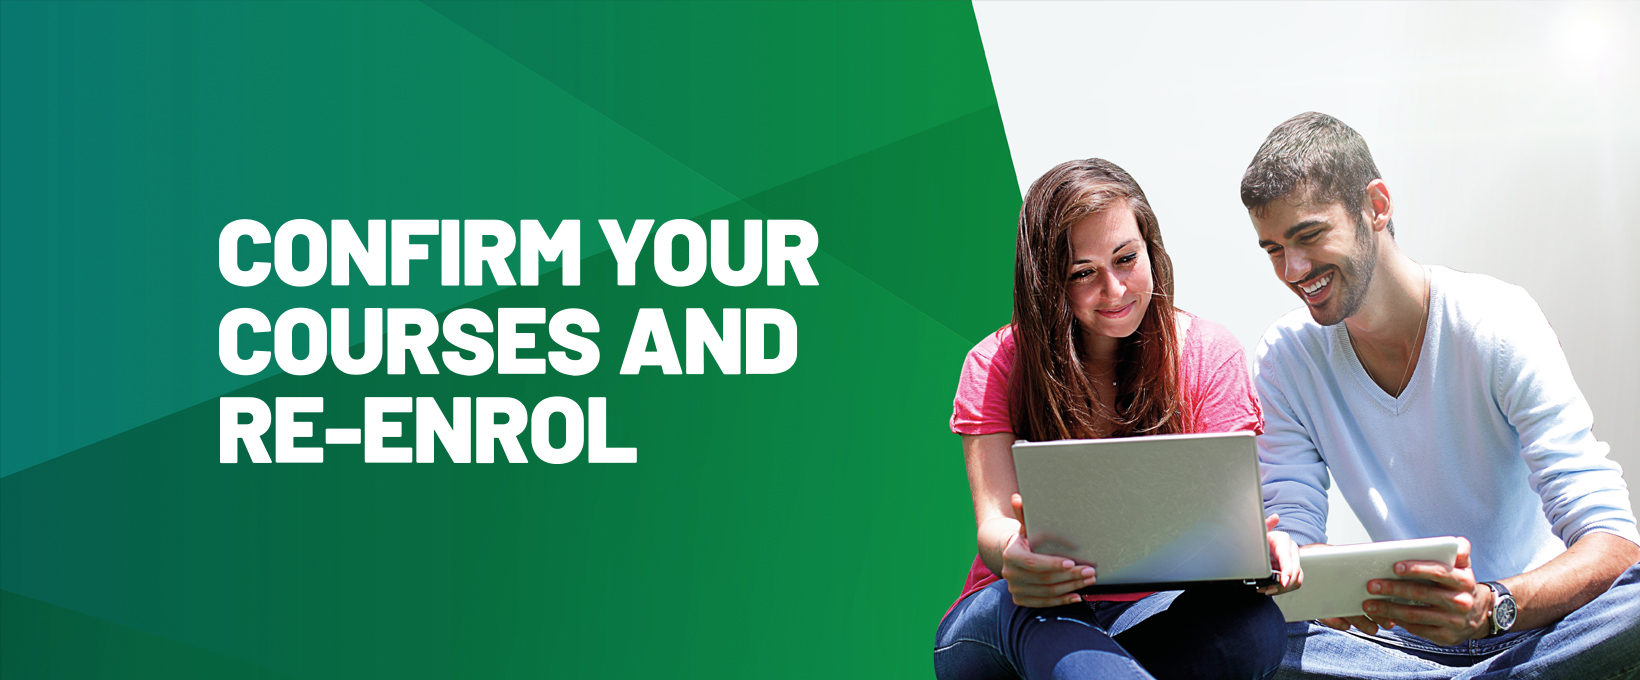 Confirm your next courses and re-enrol